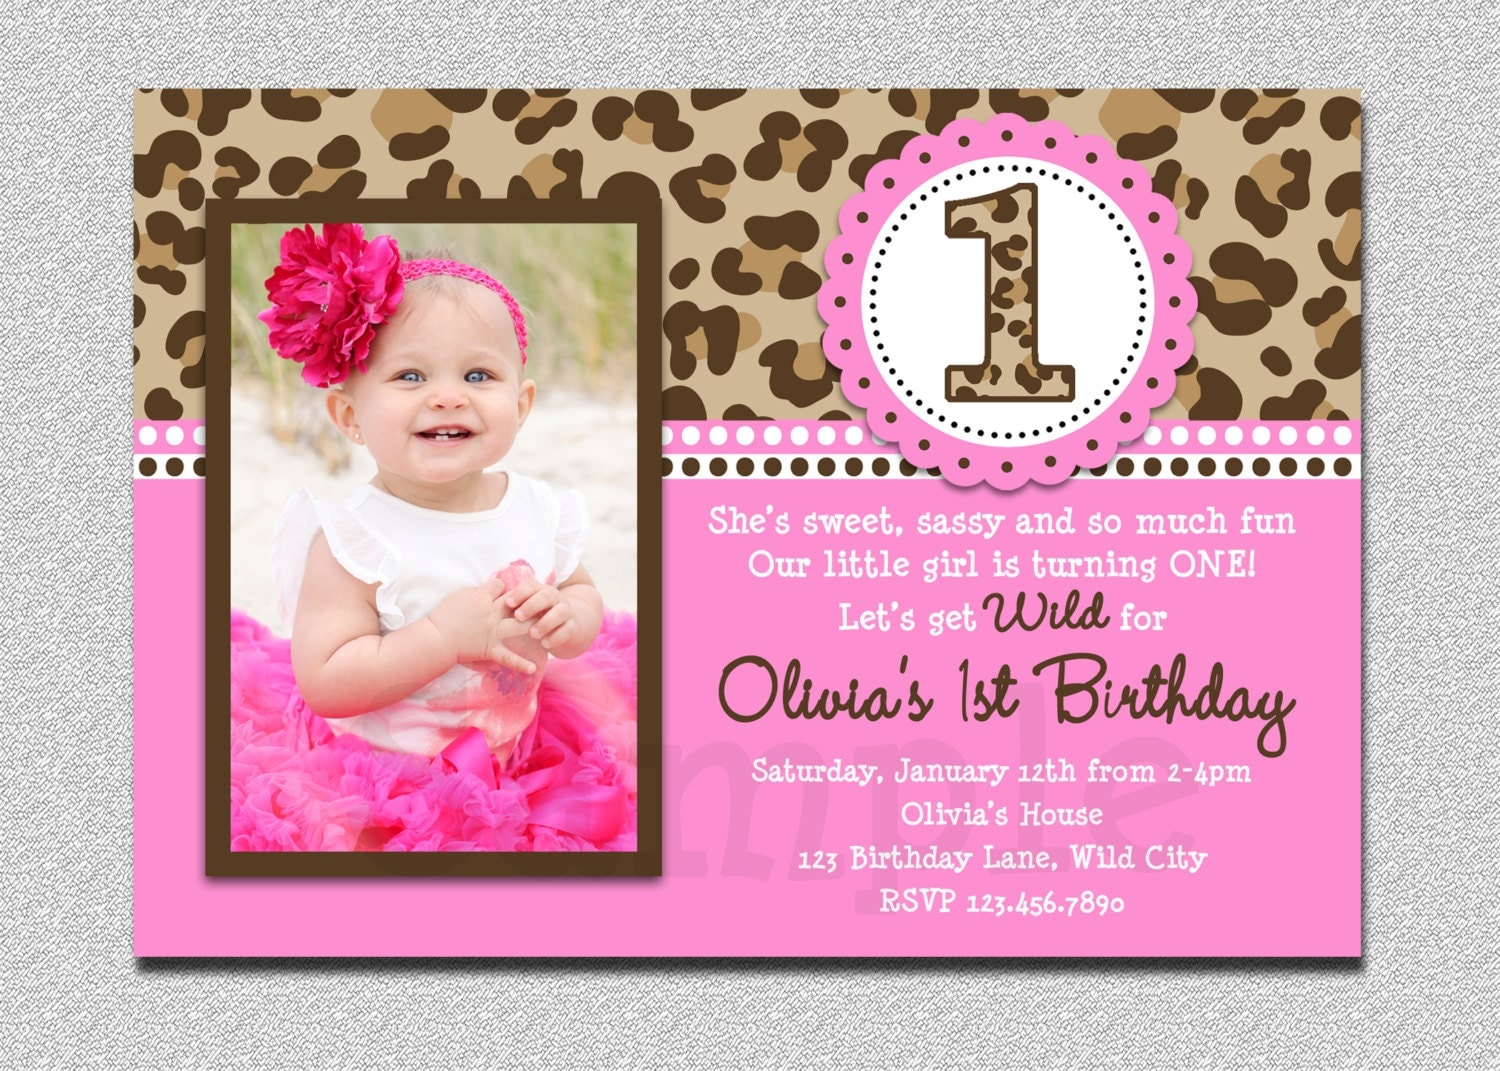 Leopard Birthday Invitation 1st Birthday Party Invitation – Invitation for First Birthday Party